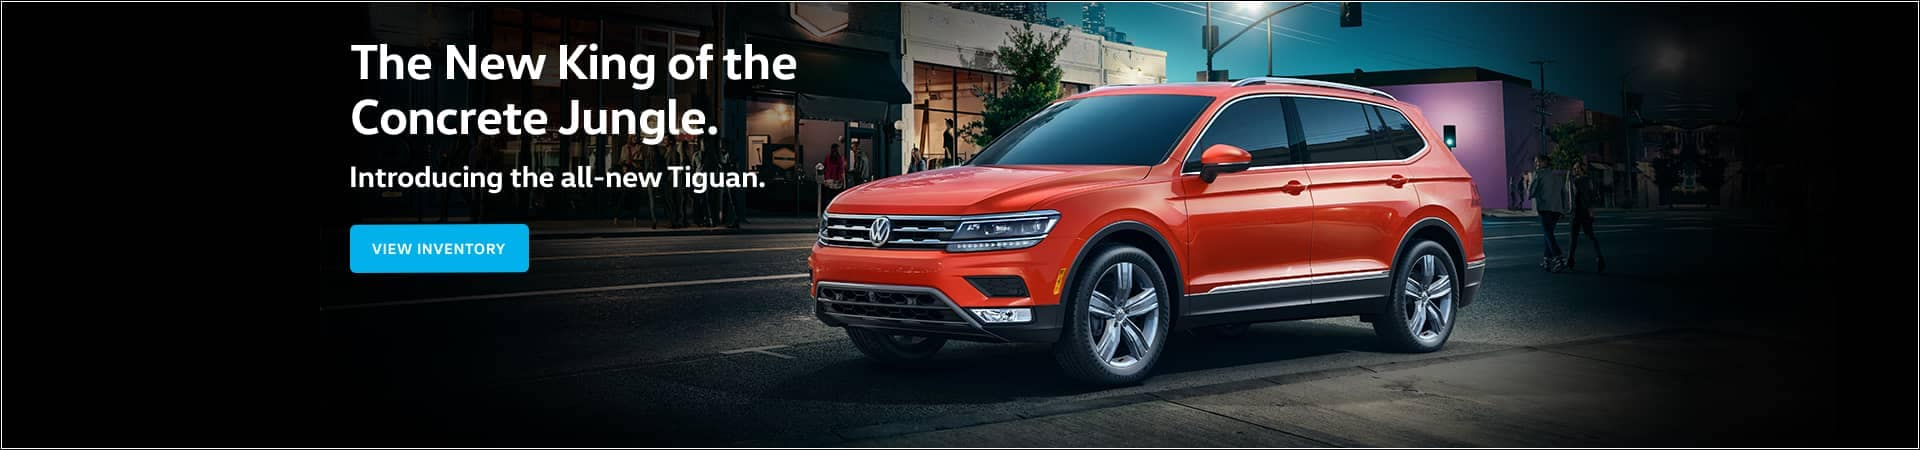 All-New 2018 Tiguan